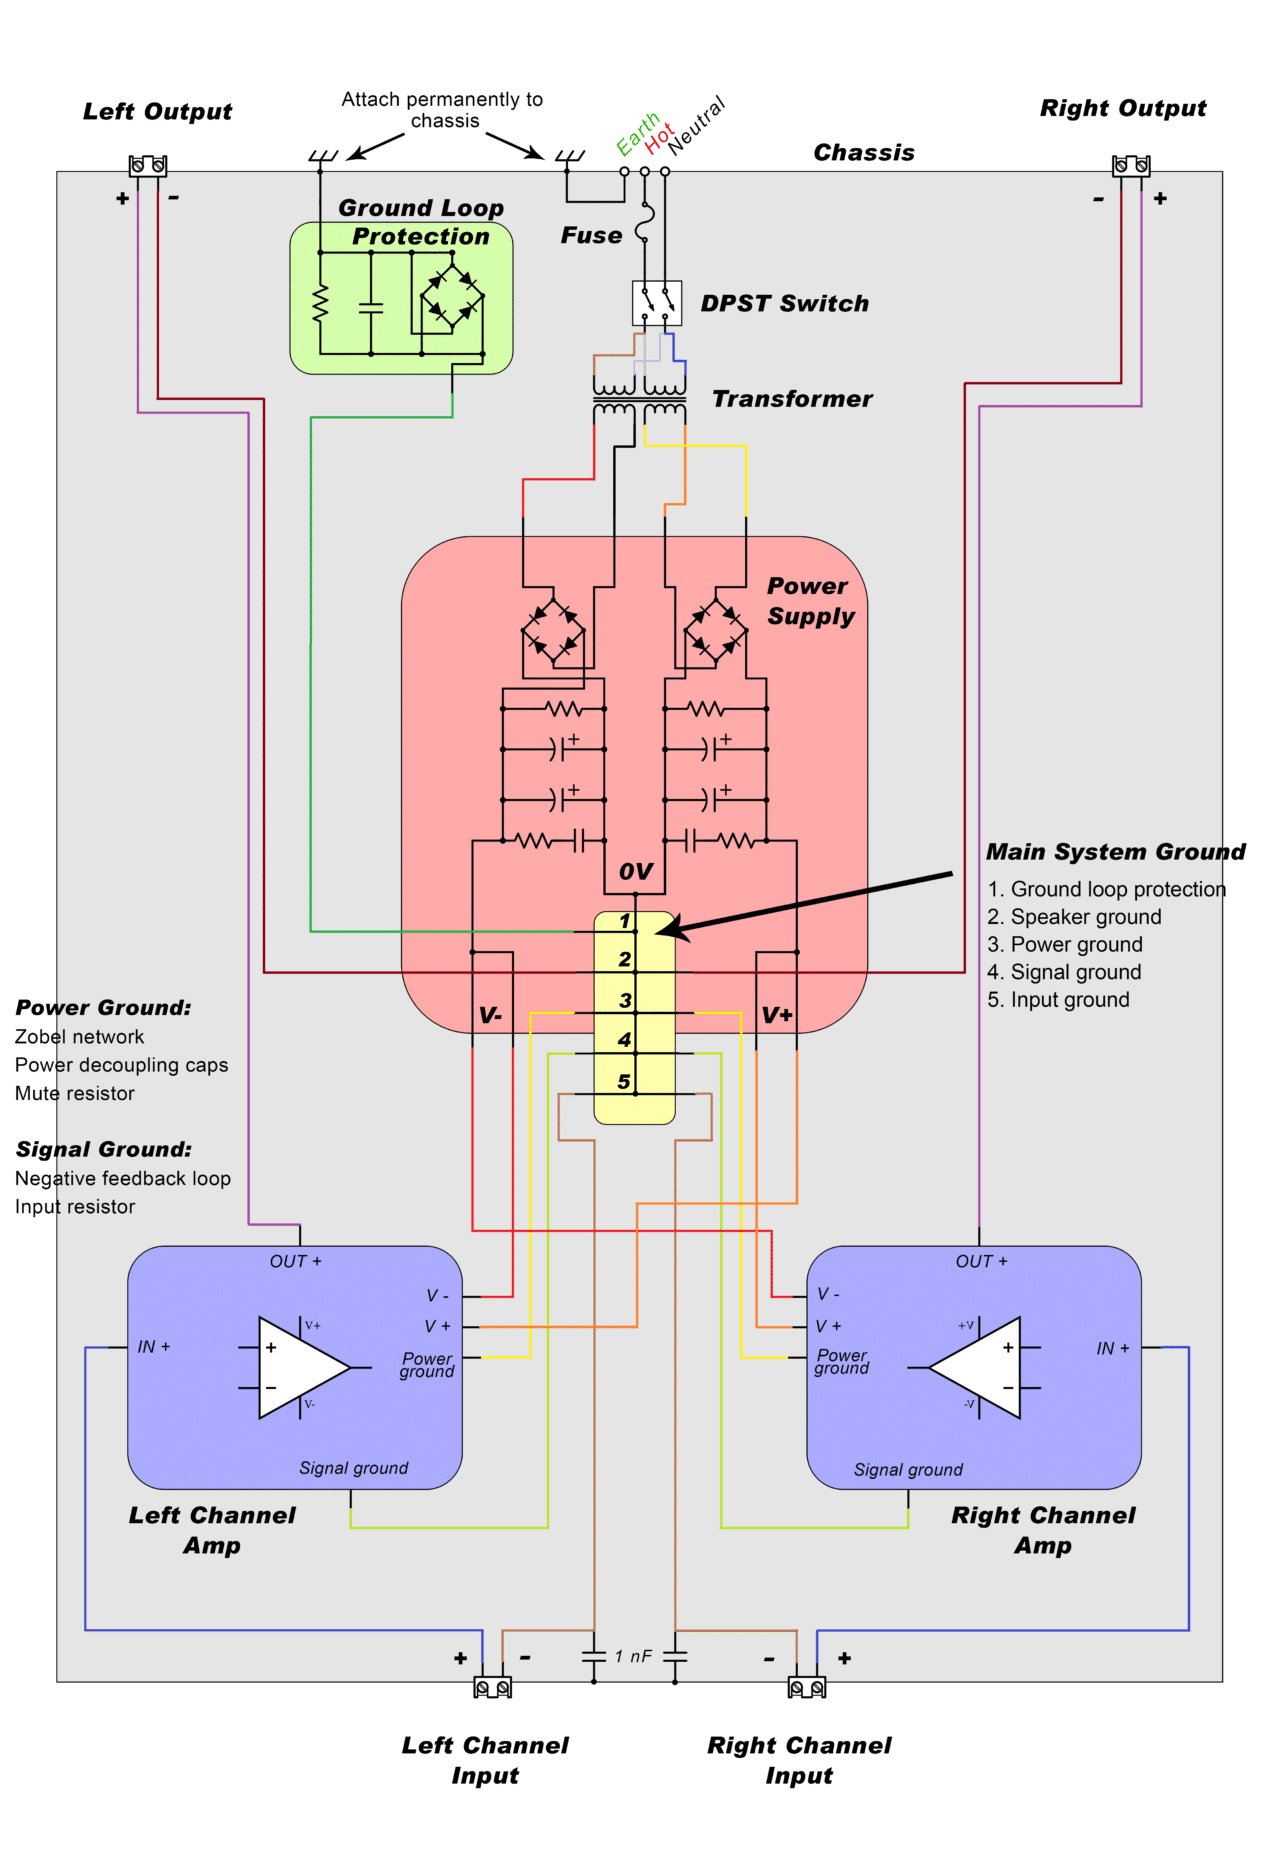 Amp Wiring Diagram : How to design and build an amplifier with the tda